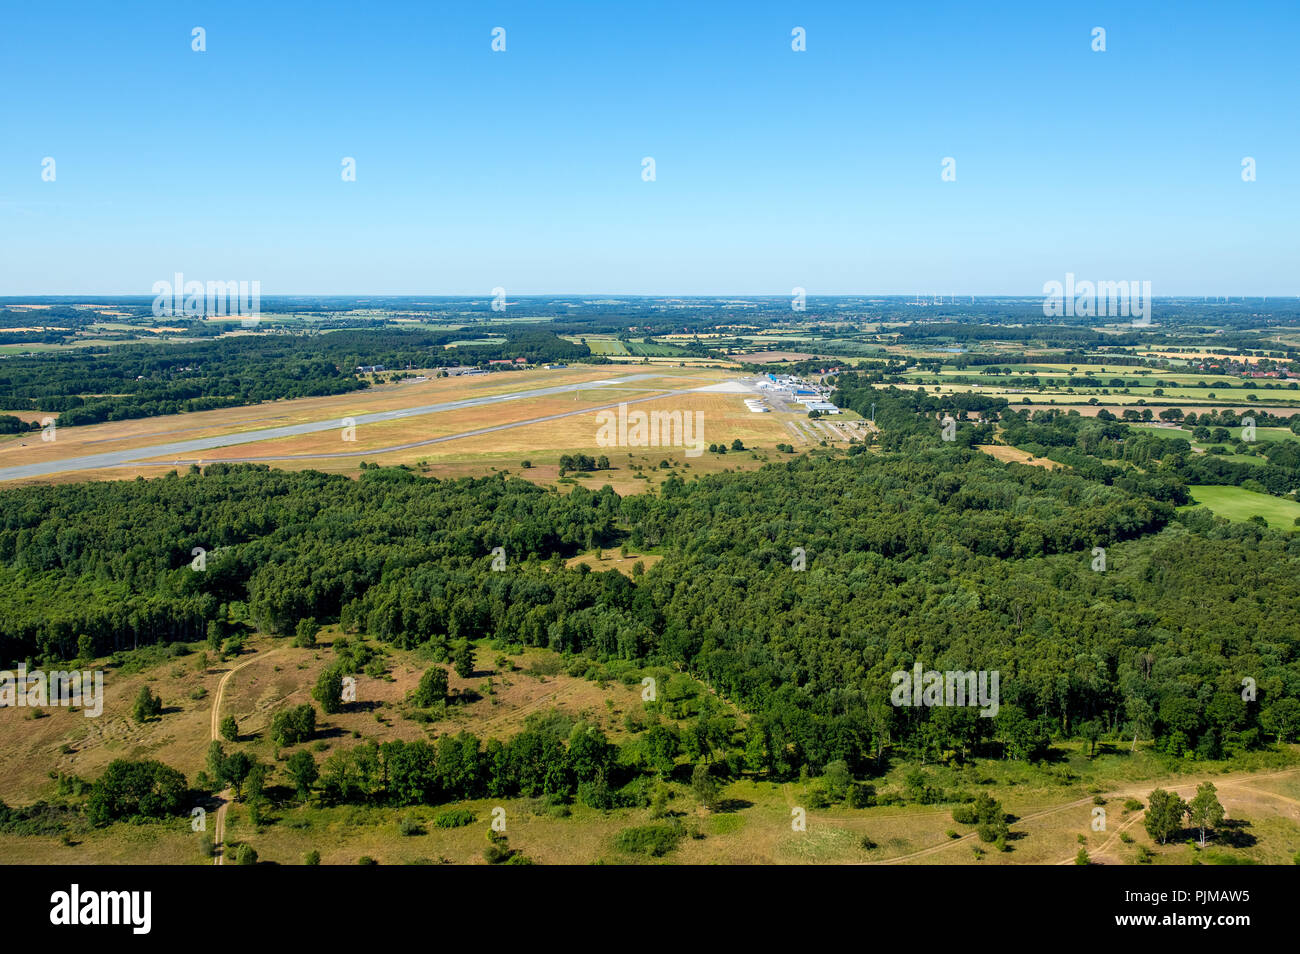 Airfield Lübeck seen from the right transverse approach to the runway 25, Groß Grönau, Bay of Lübeck, Hanseatic city, Schleswig-Holstein, Germany - Stock Image